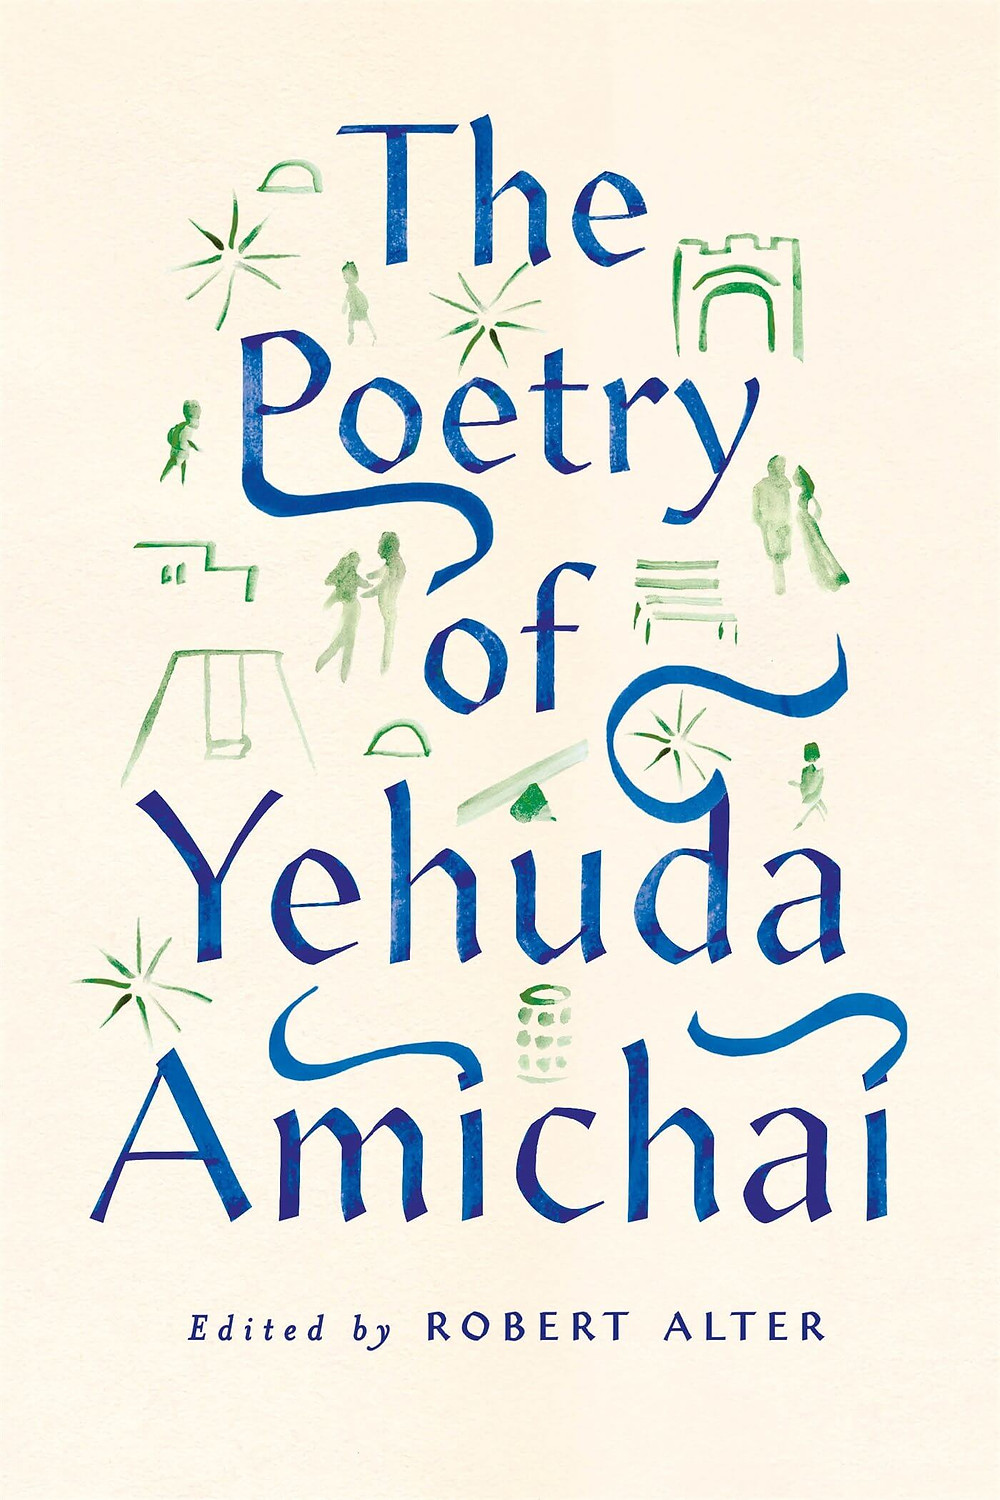 The Poetry of Yehuda Amichai translated by Robert Alter